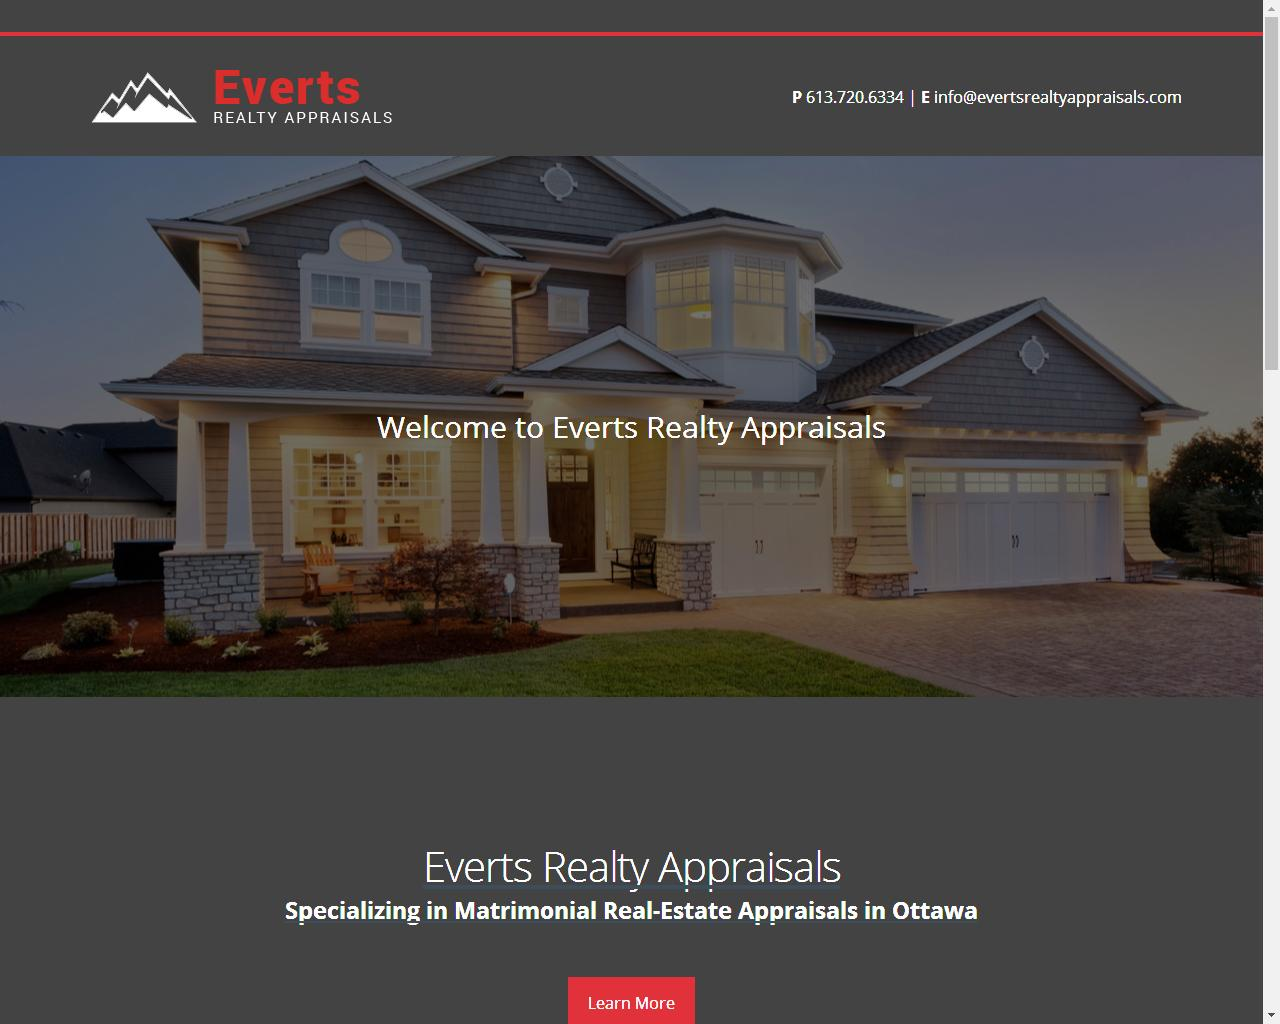 Everts Realty Appraisals